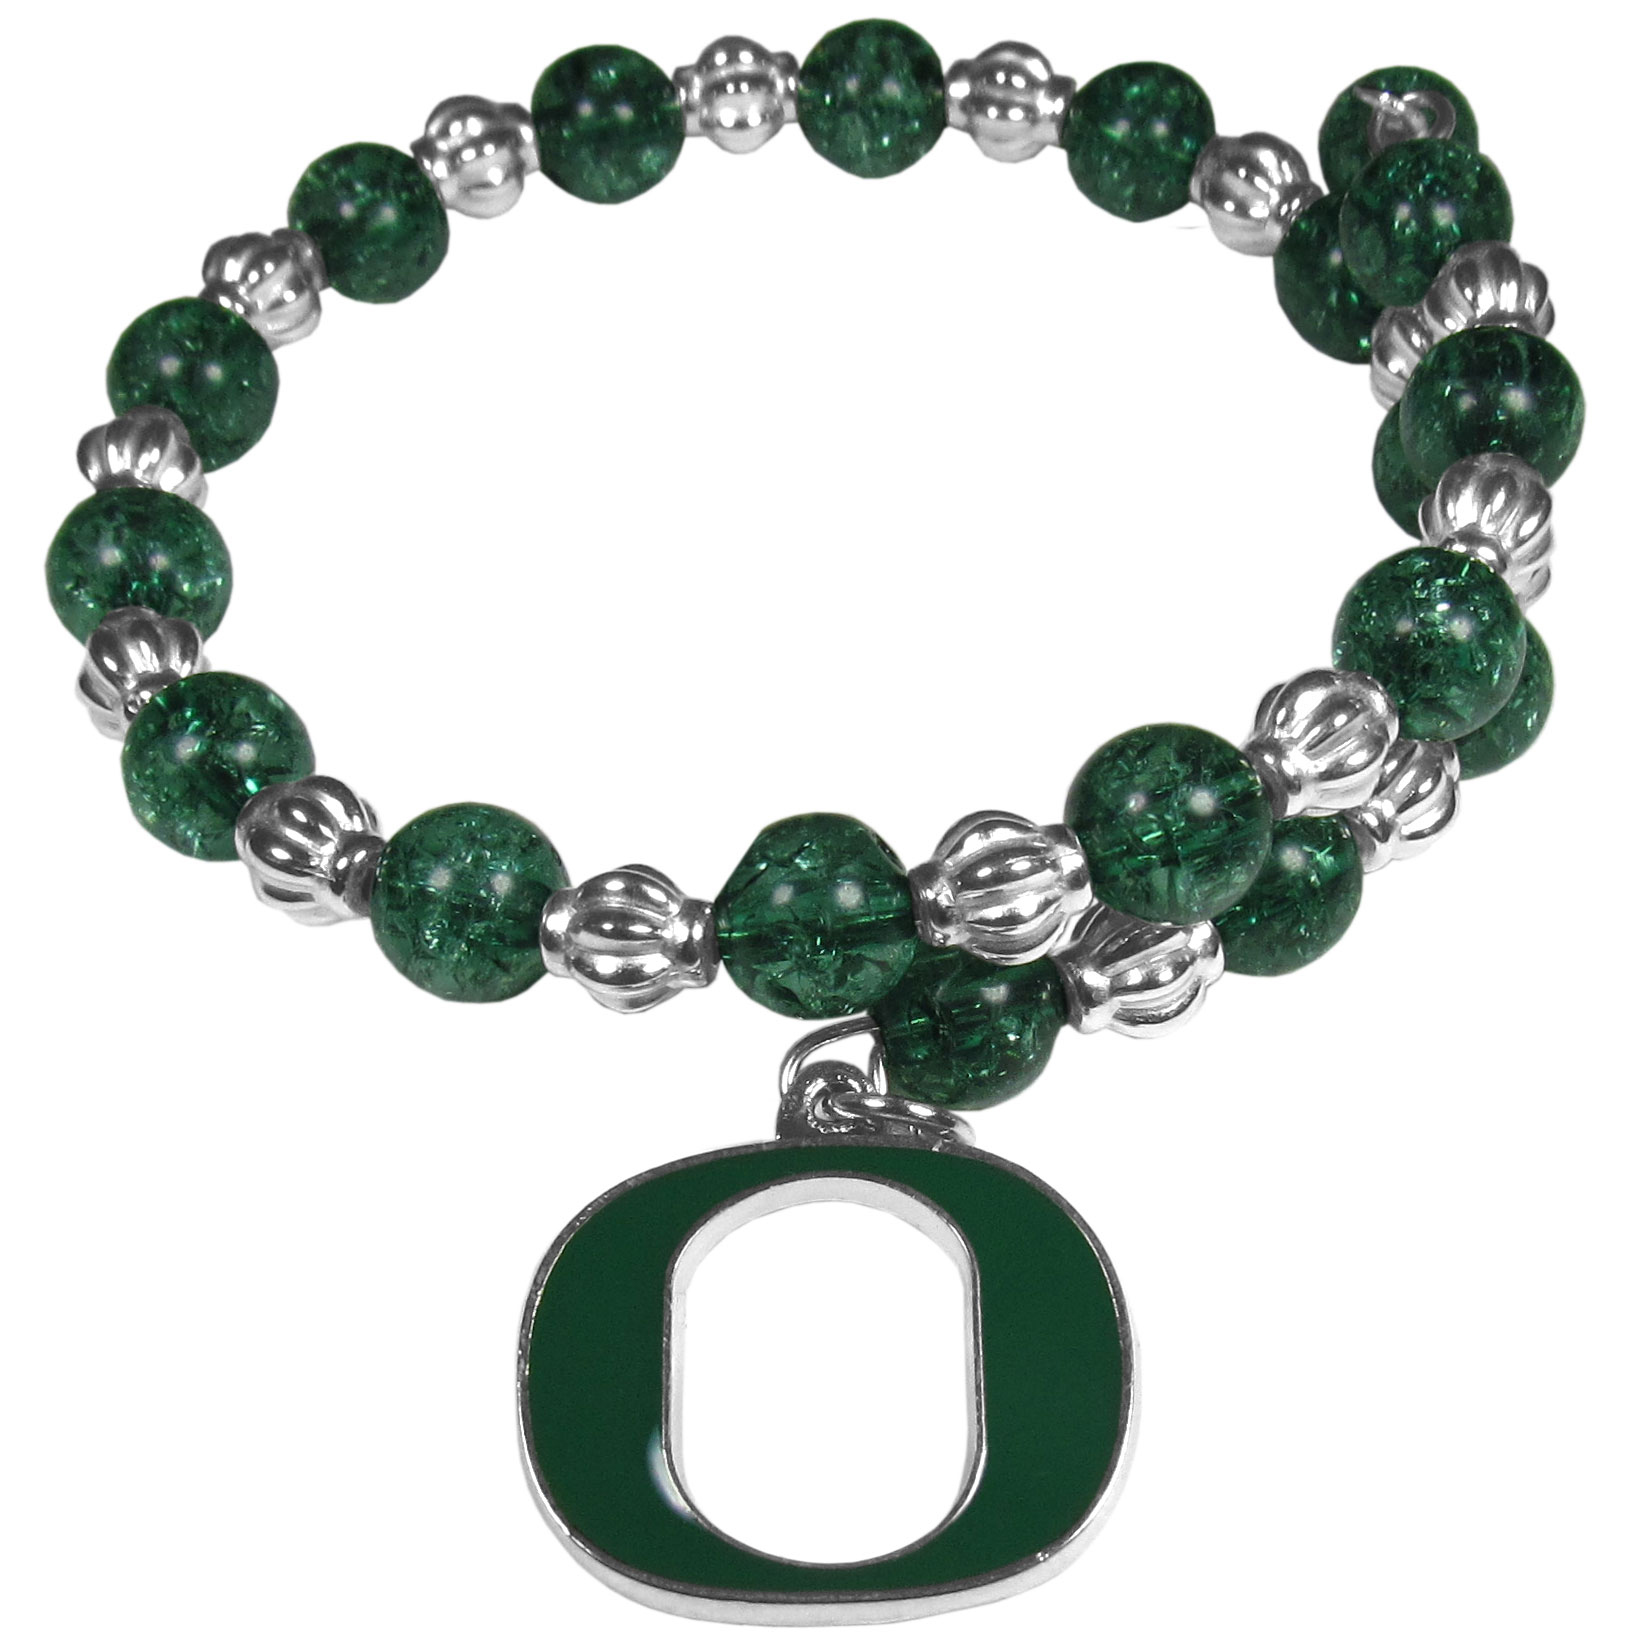 Oregon Ducks Bead Memory Wire Bracelet - Our Oregon Ducks memory wire bead bracelet is trendy way to show off your love of the game. The double wrap bracelet is completely covered in 7.5 mm crystals that are broken up with silvertoned beads creating a designer look with a sporty twist. The bracelet features a fully cast, metal team charm that has expertly enameled team colors. This fashion jewelry piece is a must-have for the die-hard fan that chic look that can dress up any outfit.